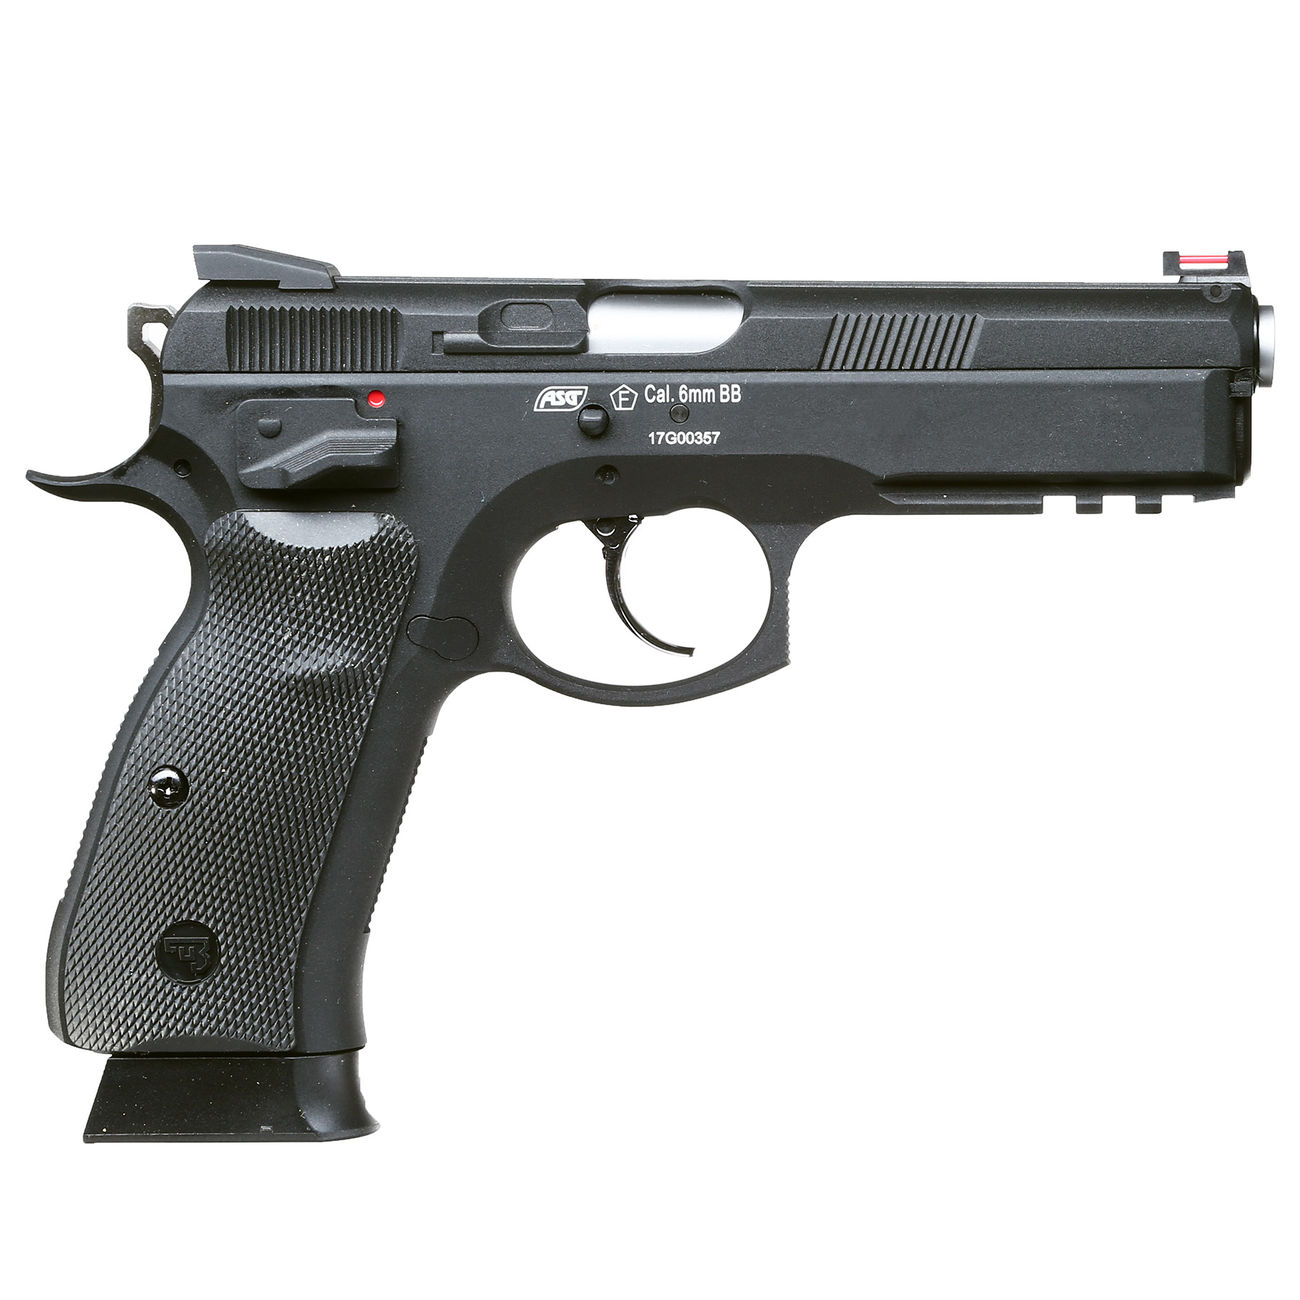 KJ Works CZ 75 SP-01 Shadow Vollmetall GBB 6mm BB schwarz 2